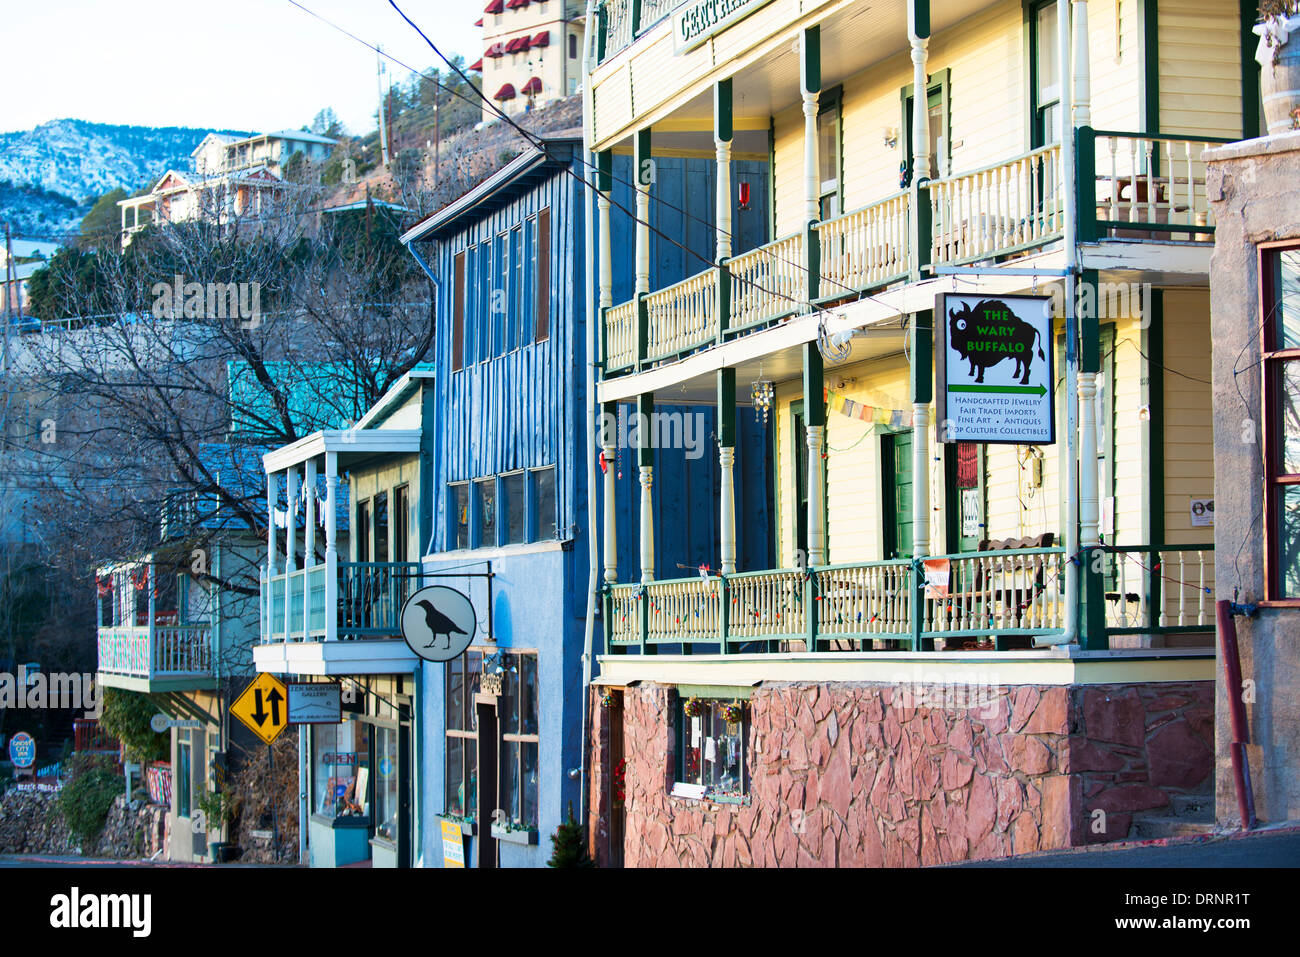 Restored historic buildings in Jerome now serve as art galleries, restaurants and inns. - Stock Image